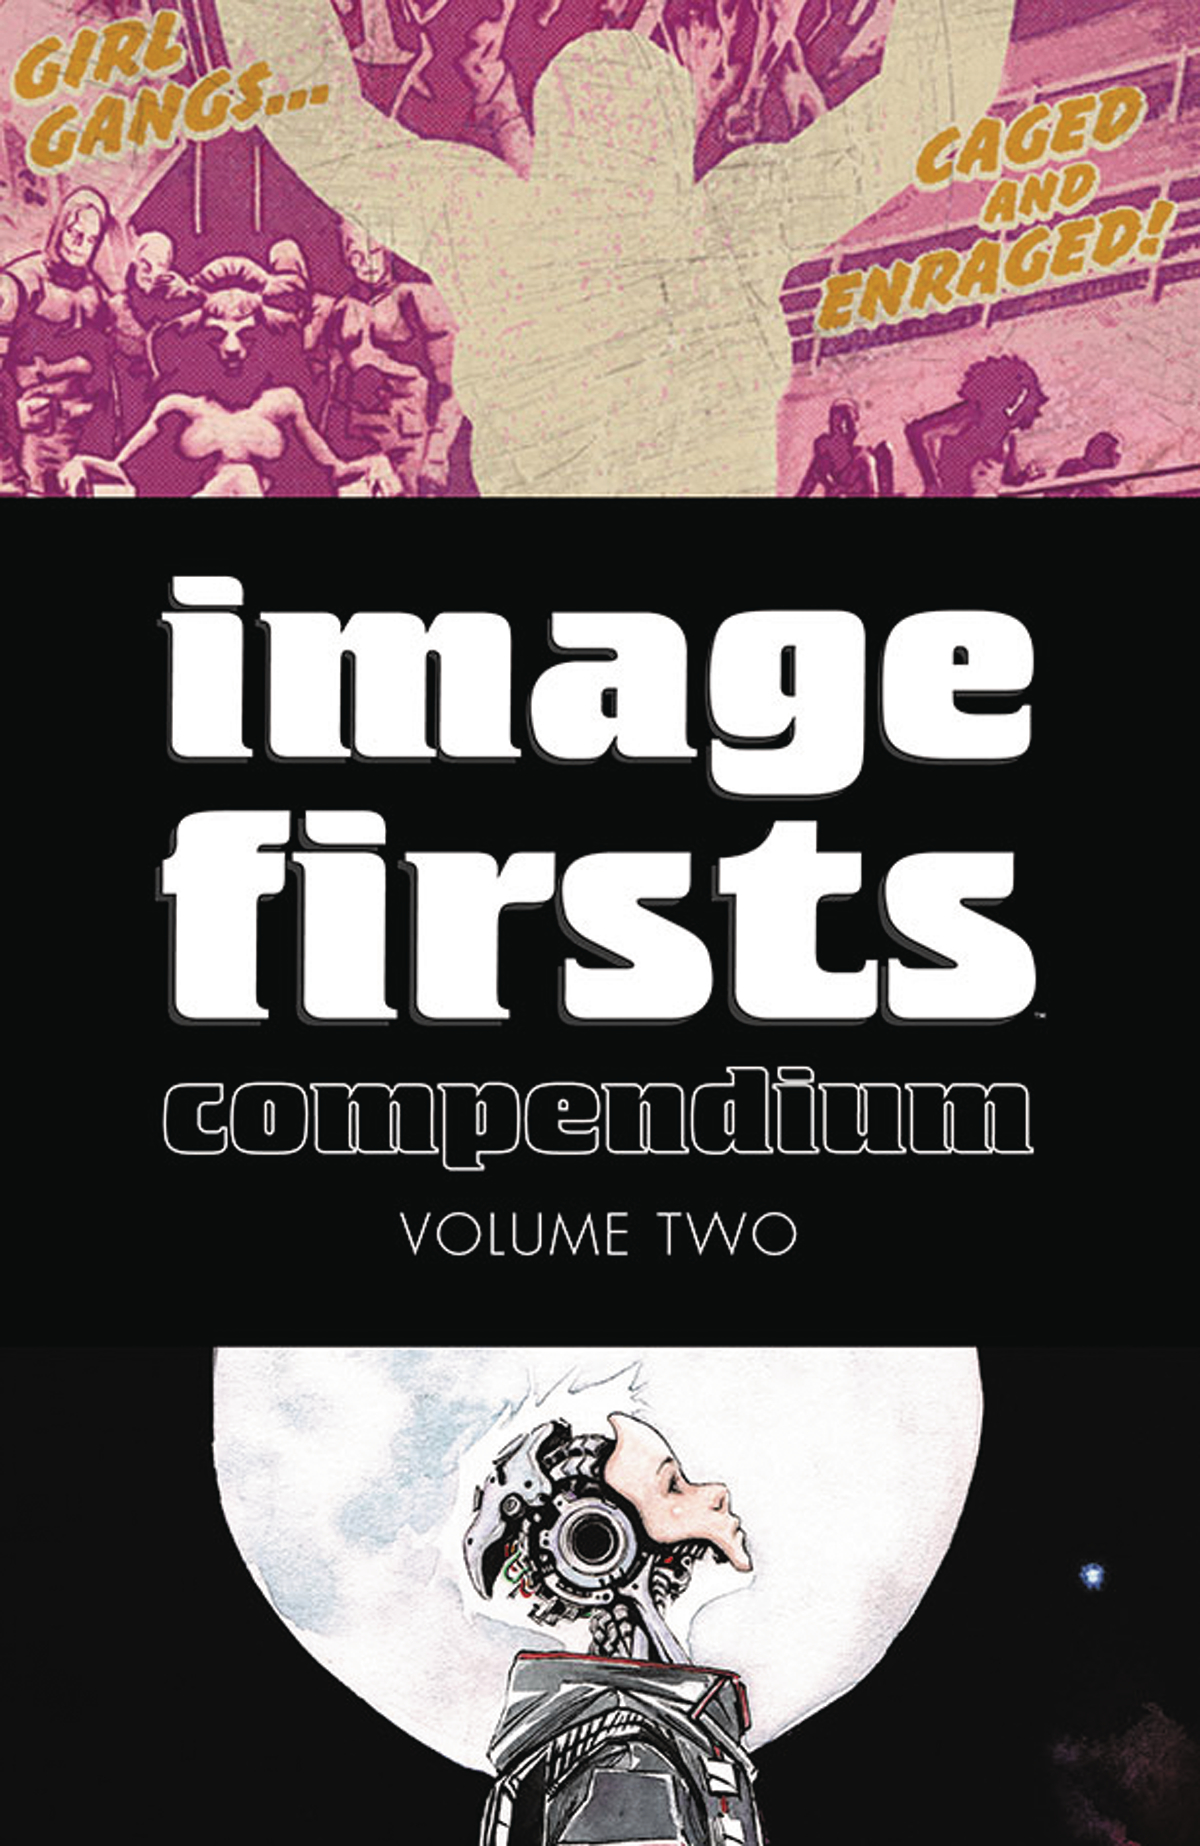 IMAGE FIRSTS COMPENDIUM TP VOL 02 2015